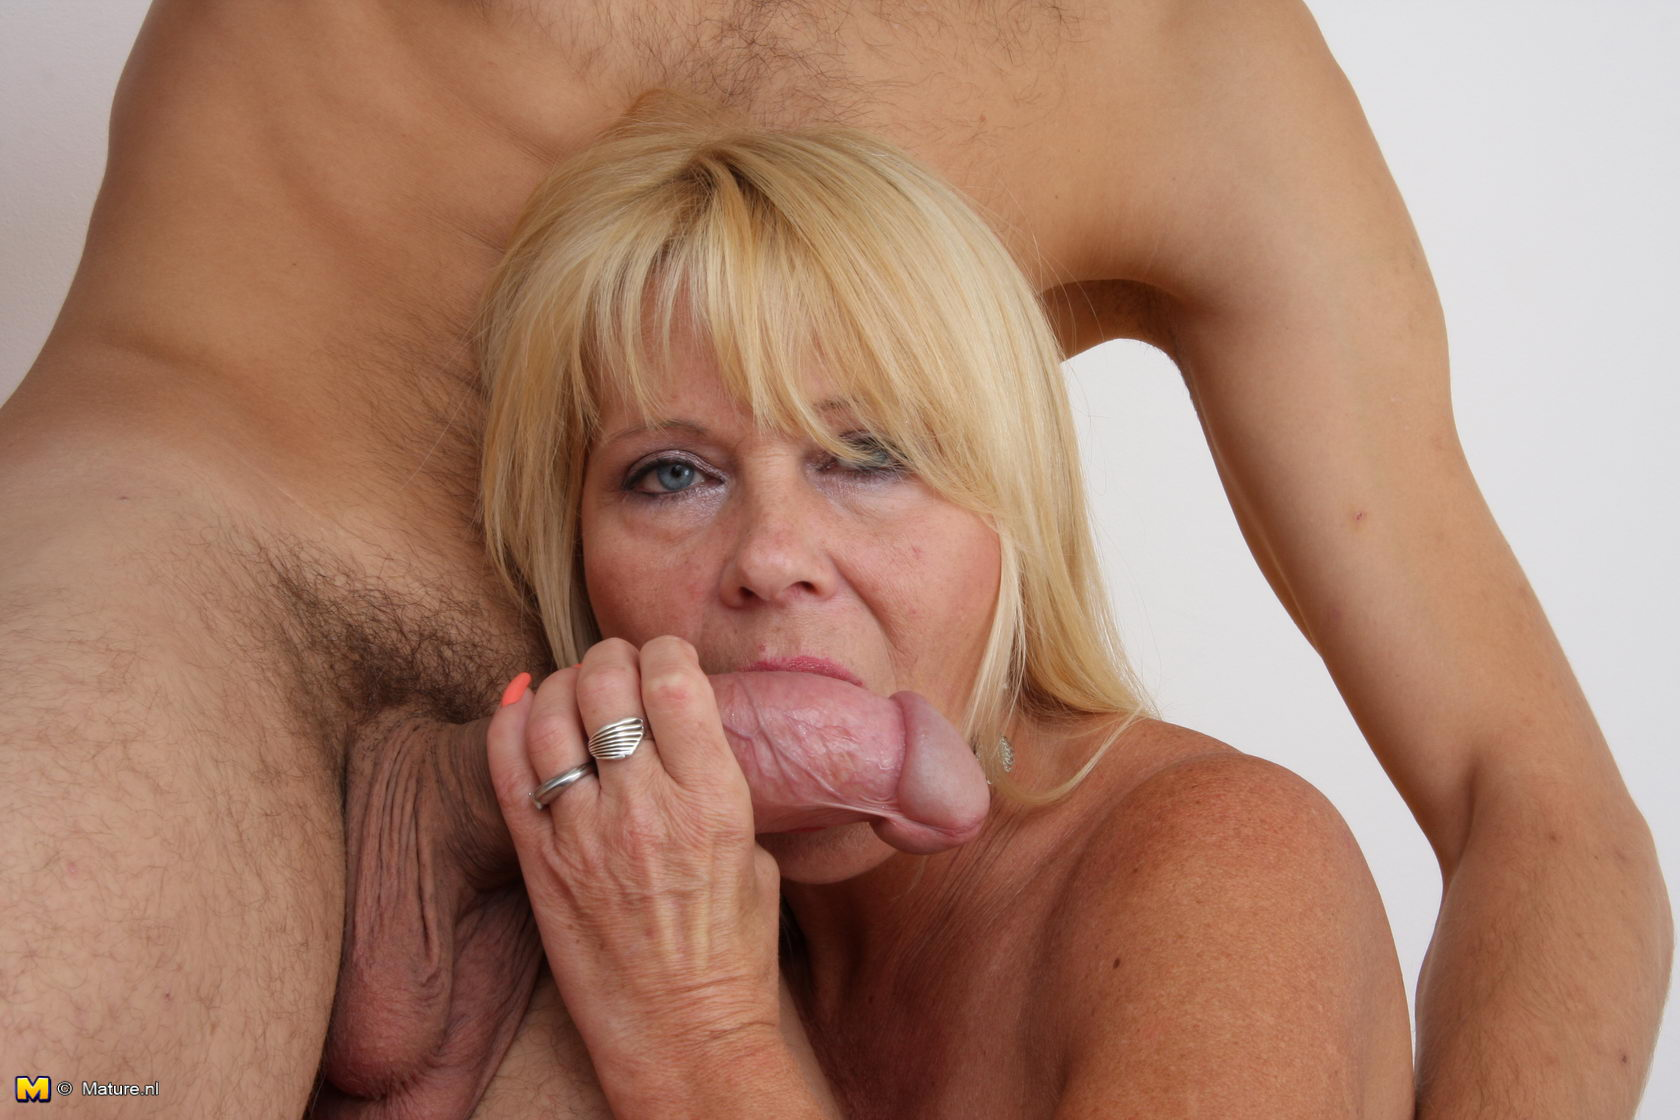 With you free milf porn pic excited